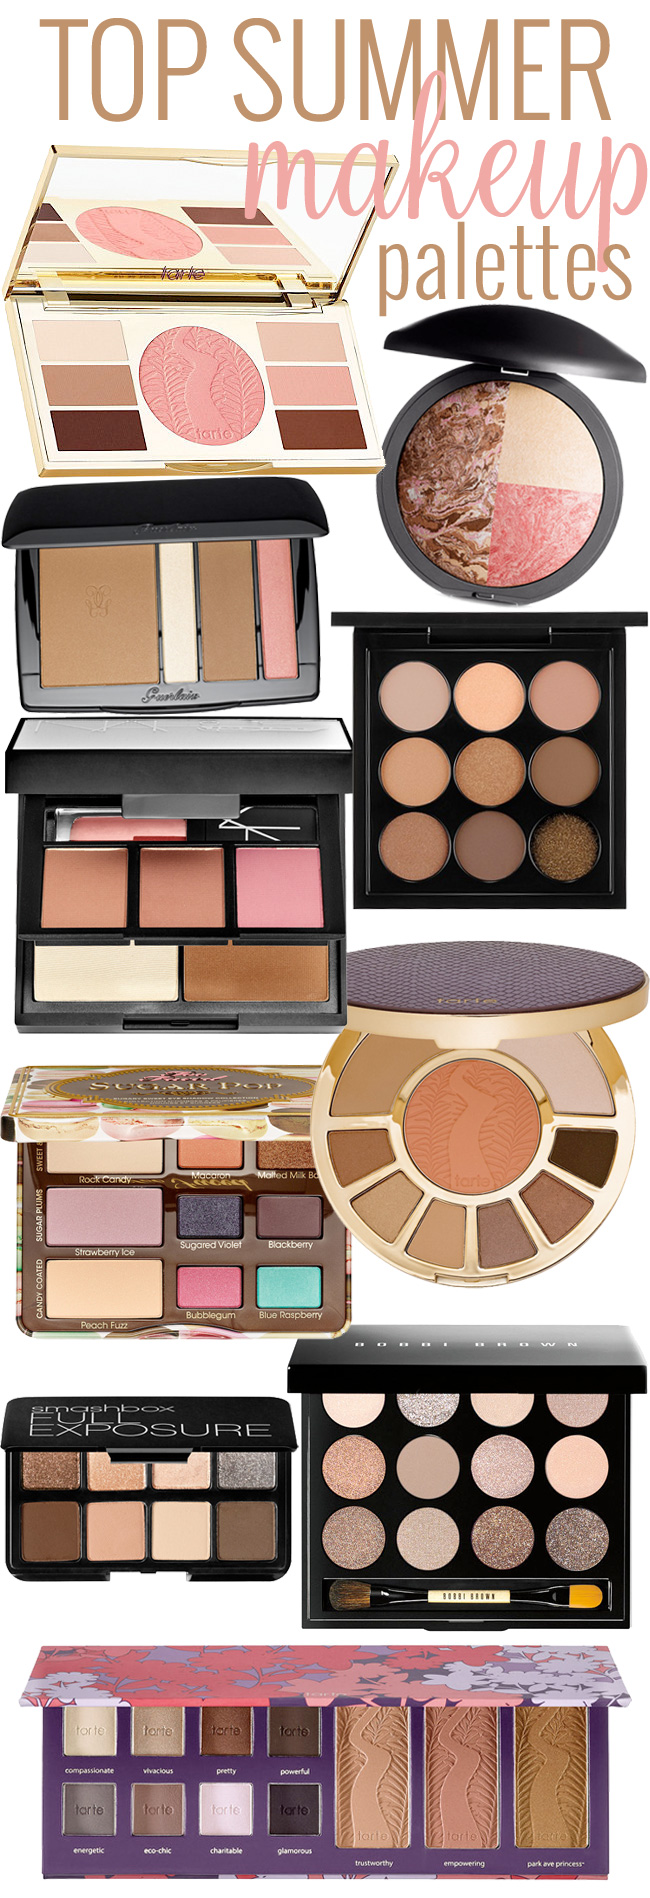 Top Summer Makeup Palettes